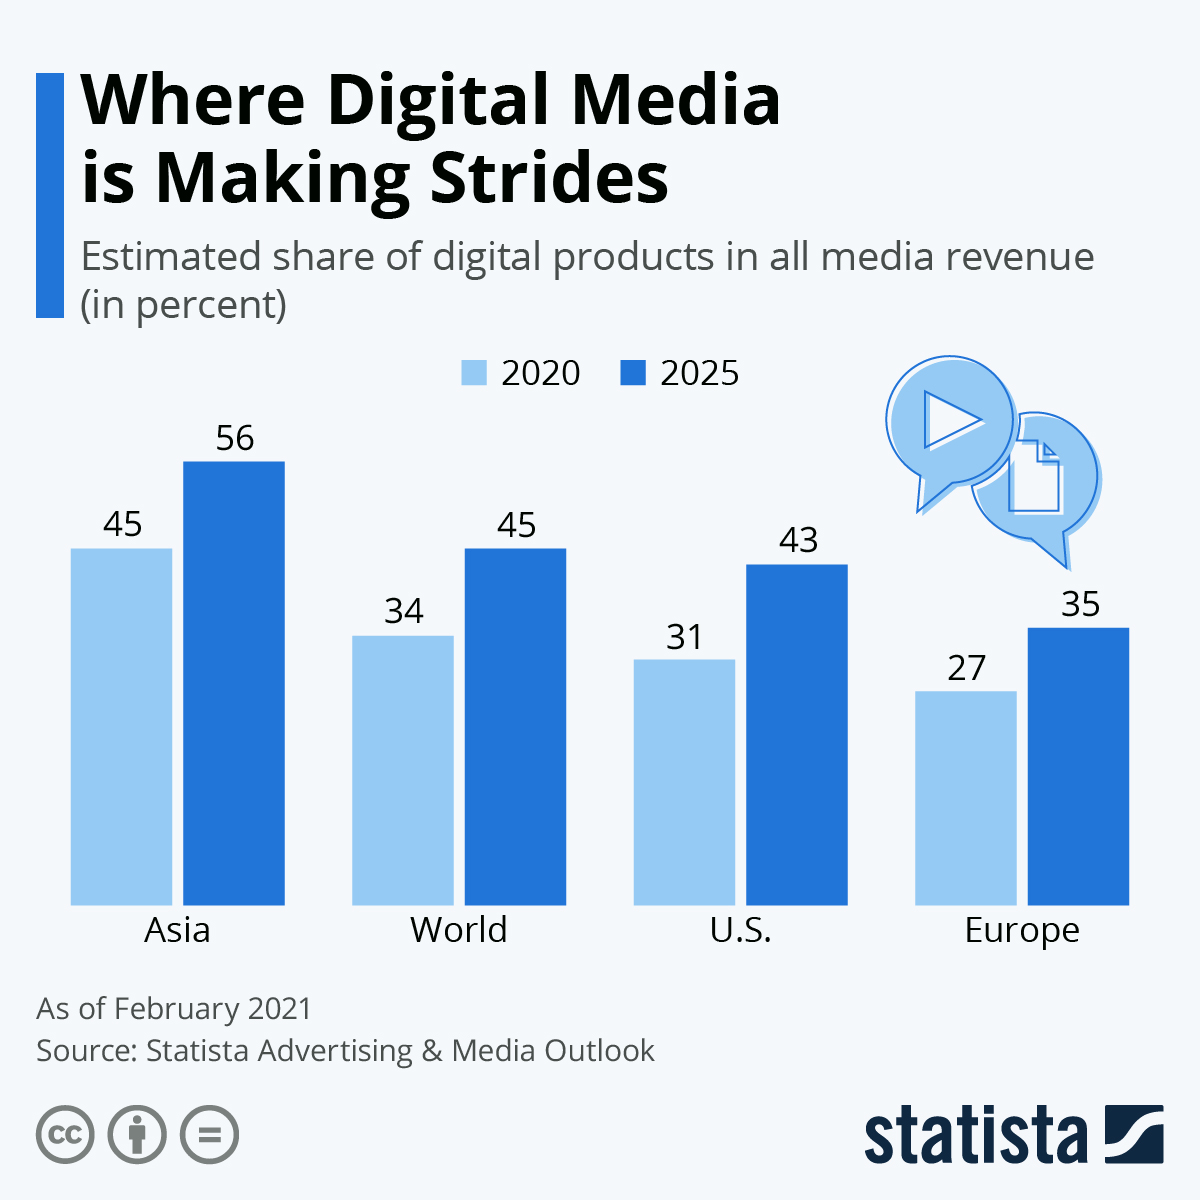 Where are digital media the strongest?